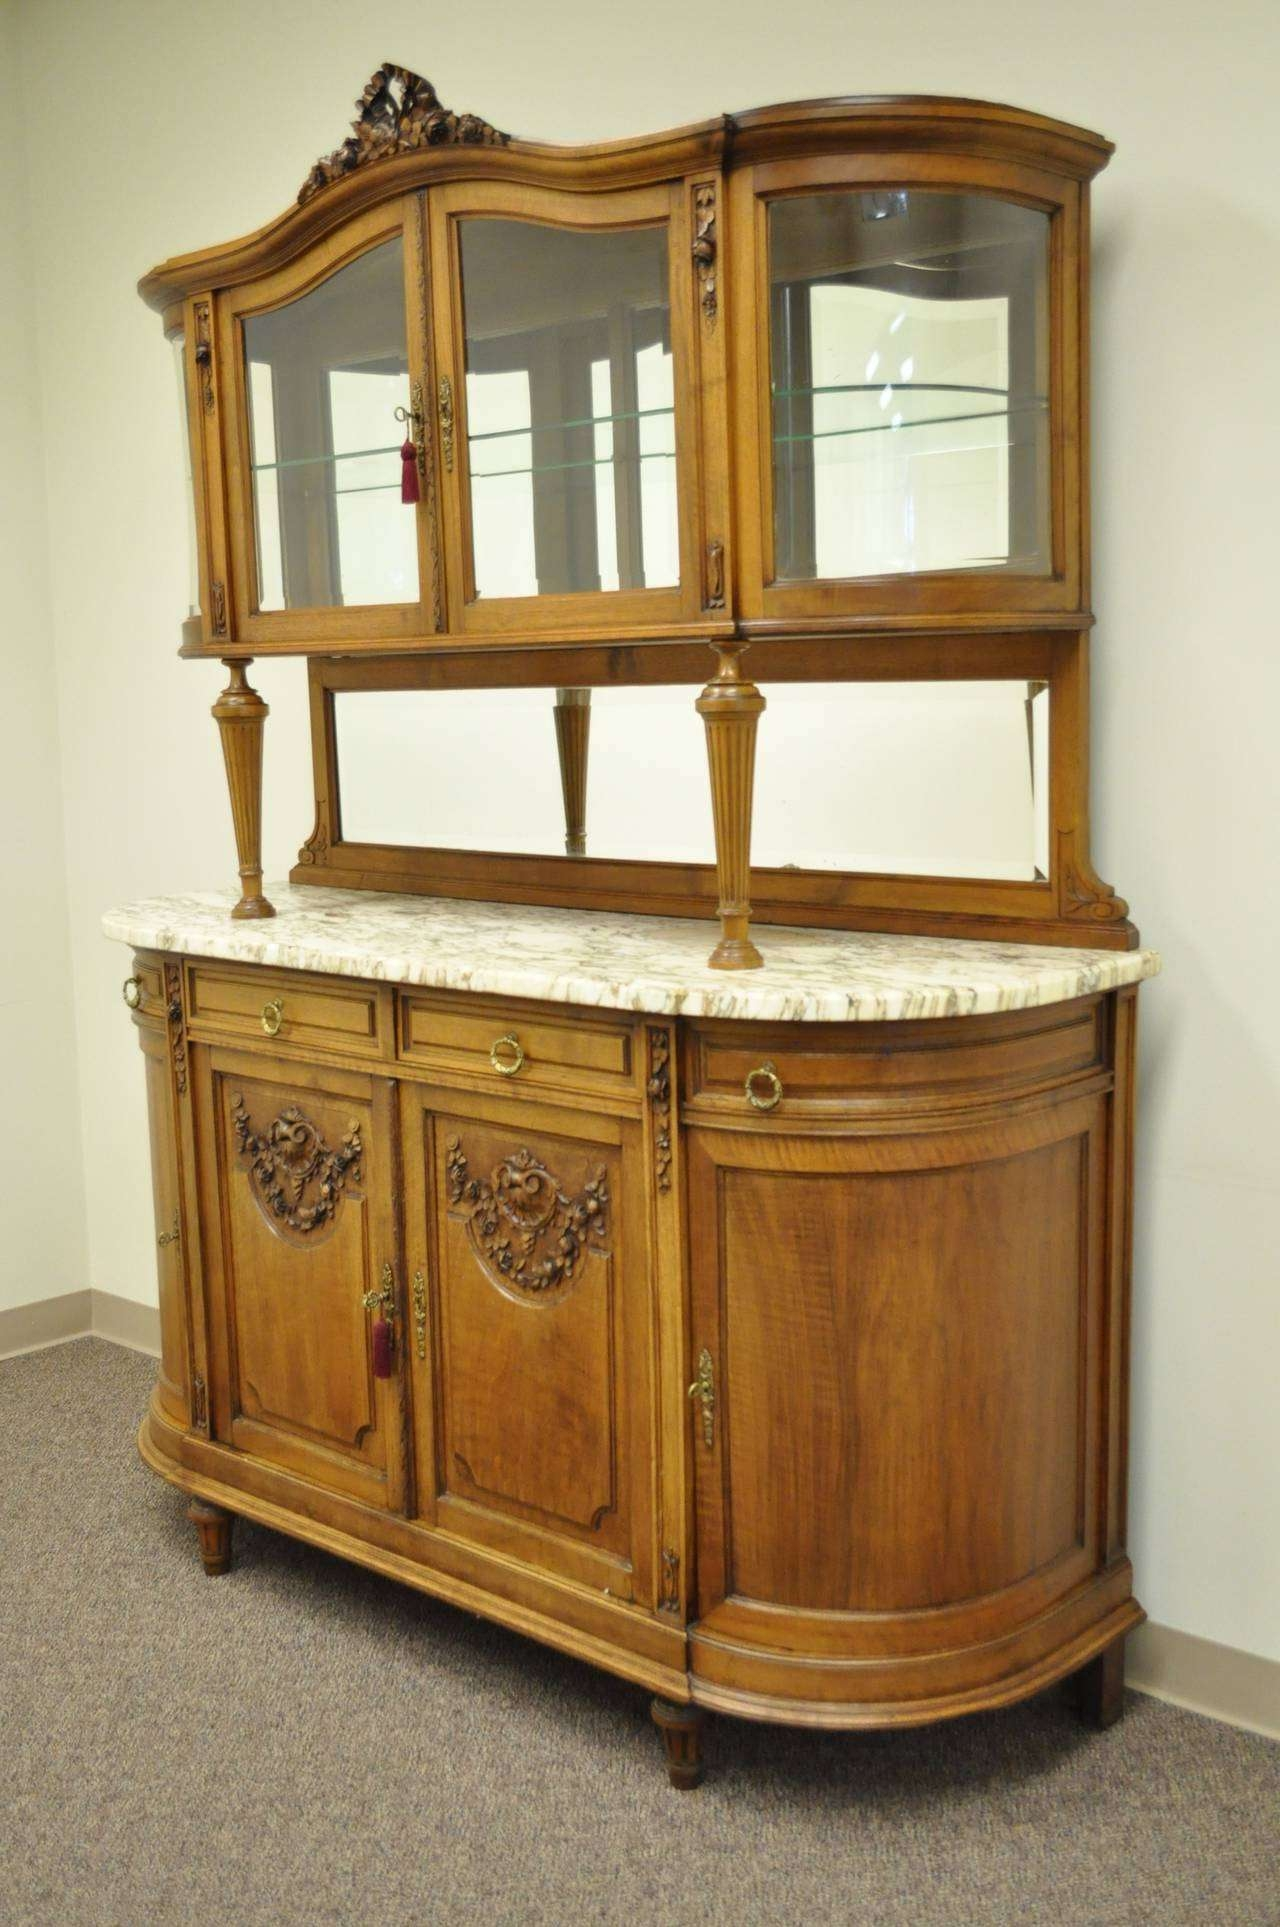 French Louis Xvi Style Marble Top Sideboard Or Curio Cabinet Inside Antique Marble Top Sideboards (View 16 of 20)